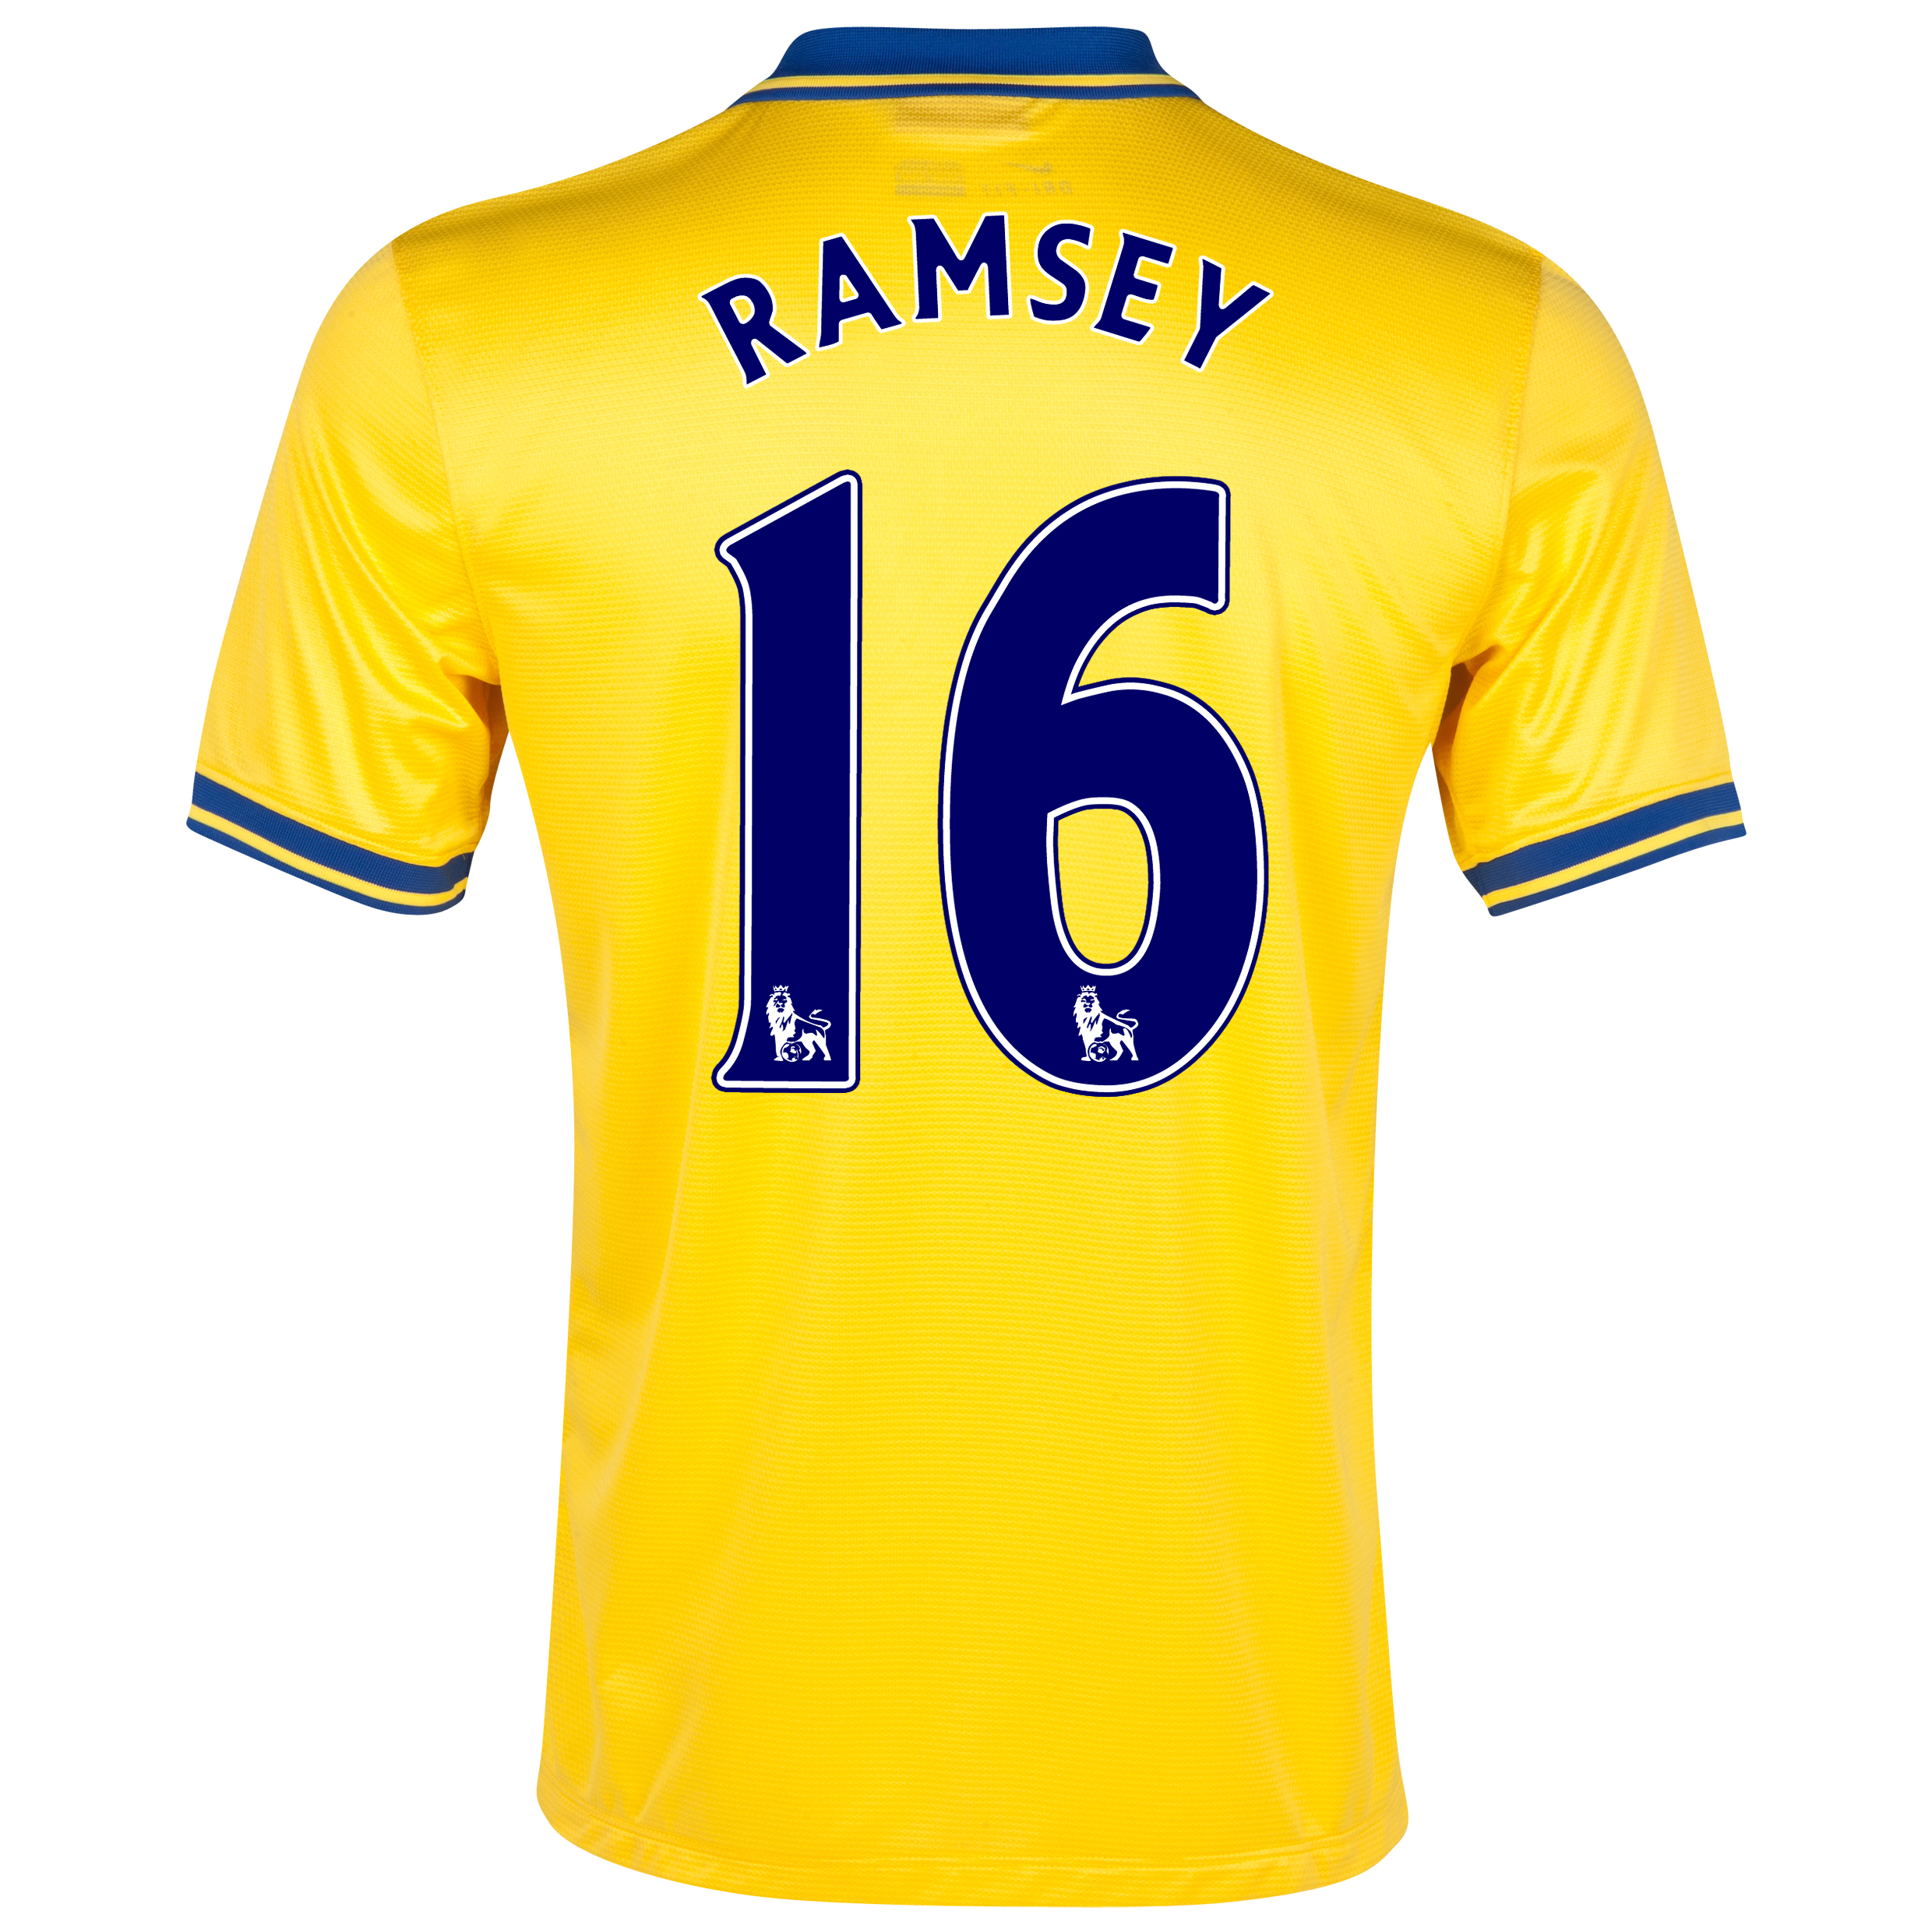 Arsenal Away Shirt 2013/14 with Ramsey 16 printing